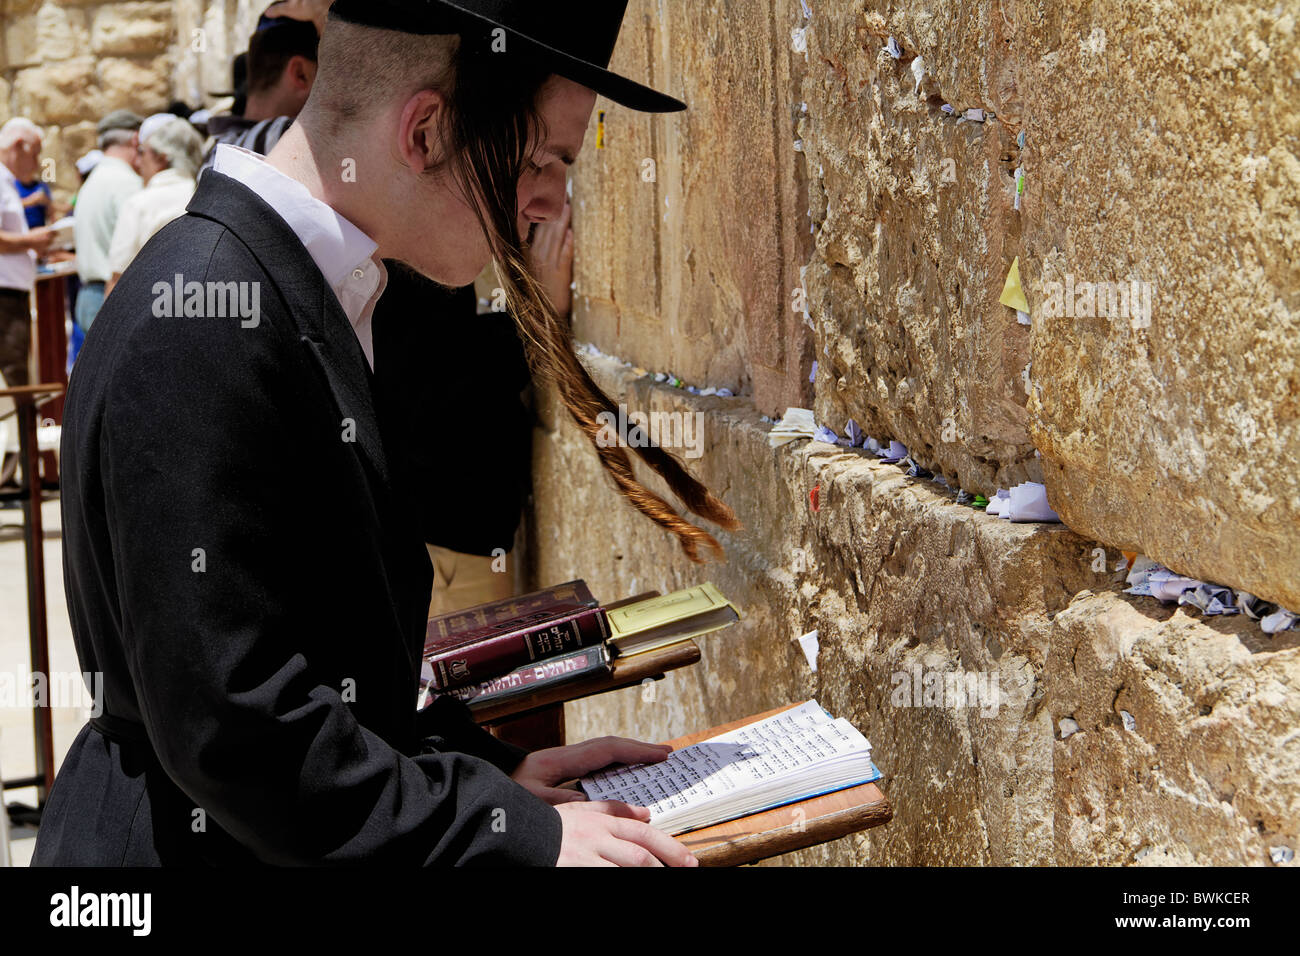 JEWS PRAYING WESTERN WAILING WALL JERUSALEM ISRAEL - Stock Image